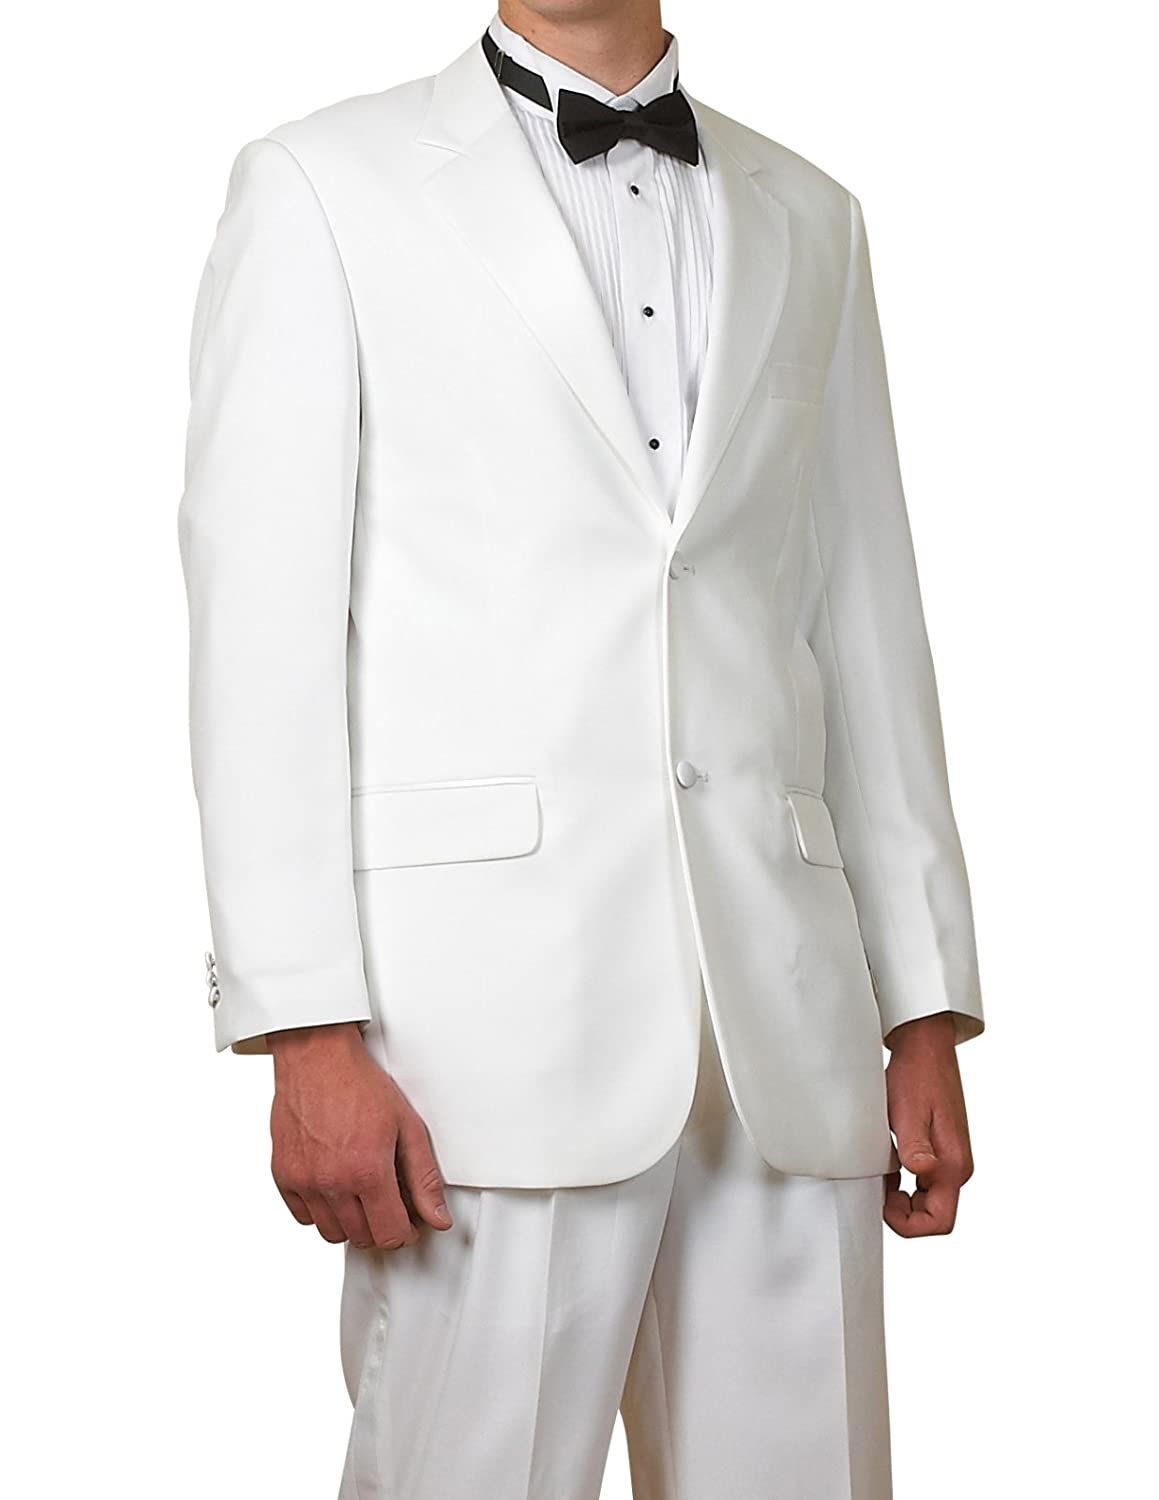 New Mens White 2 Button Tuxedo Suit - Includes Jacket and Pants at ...